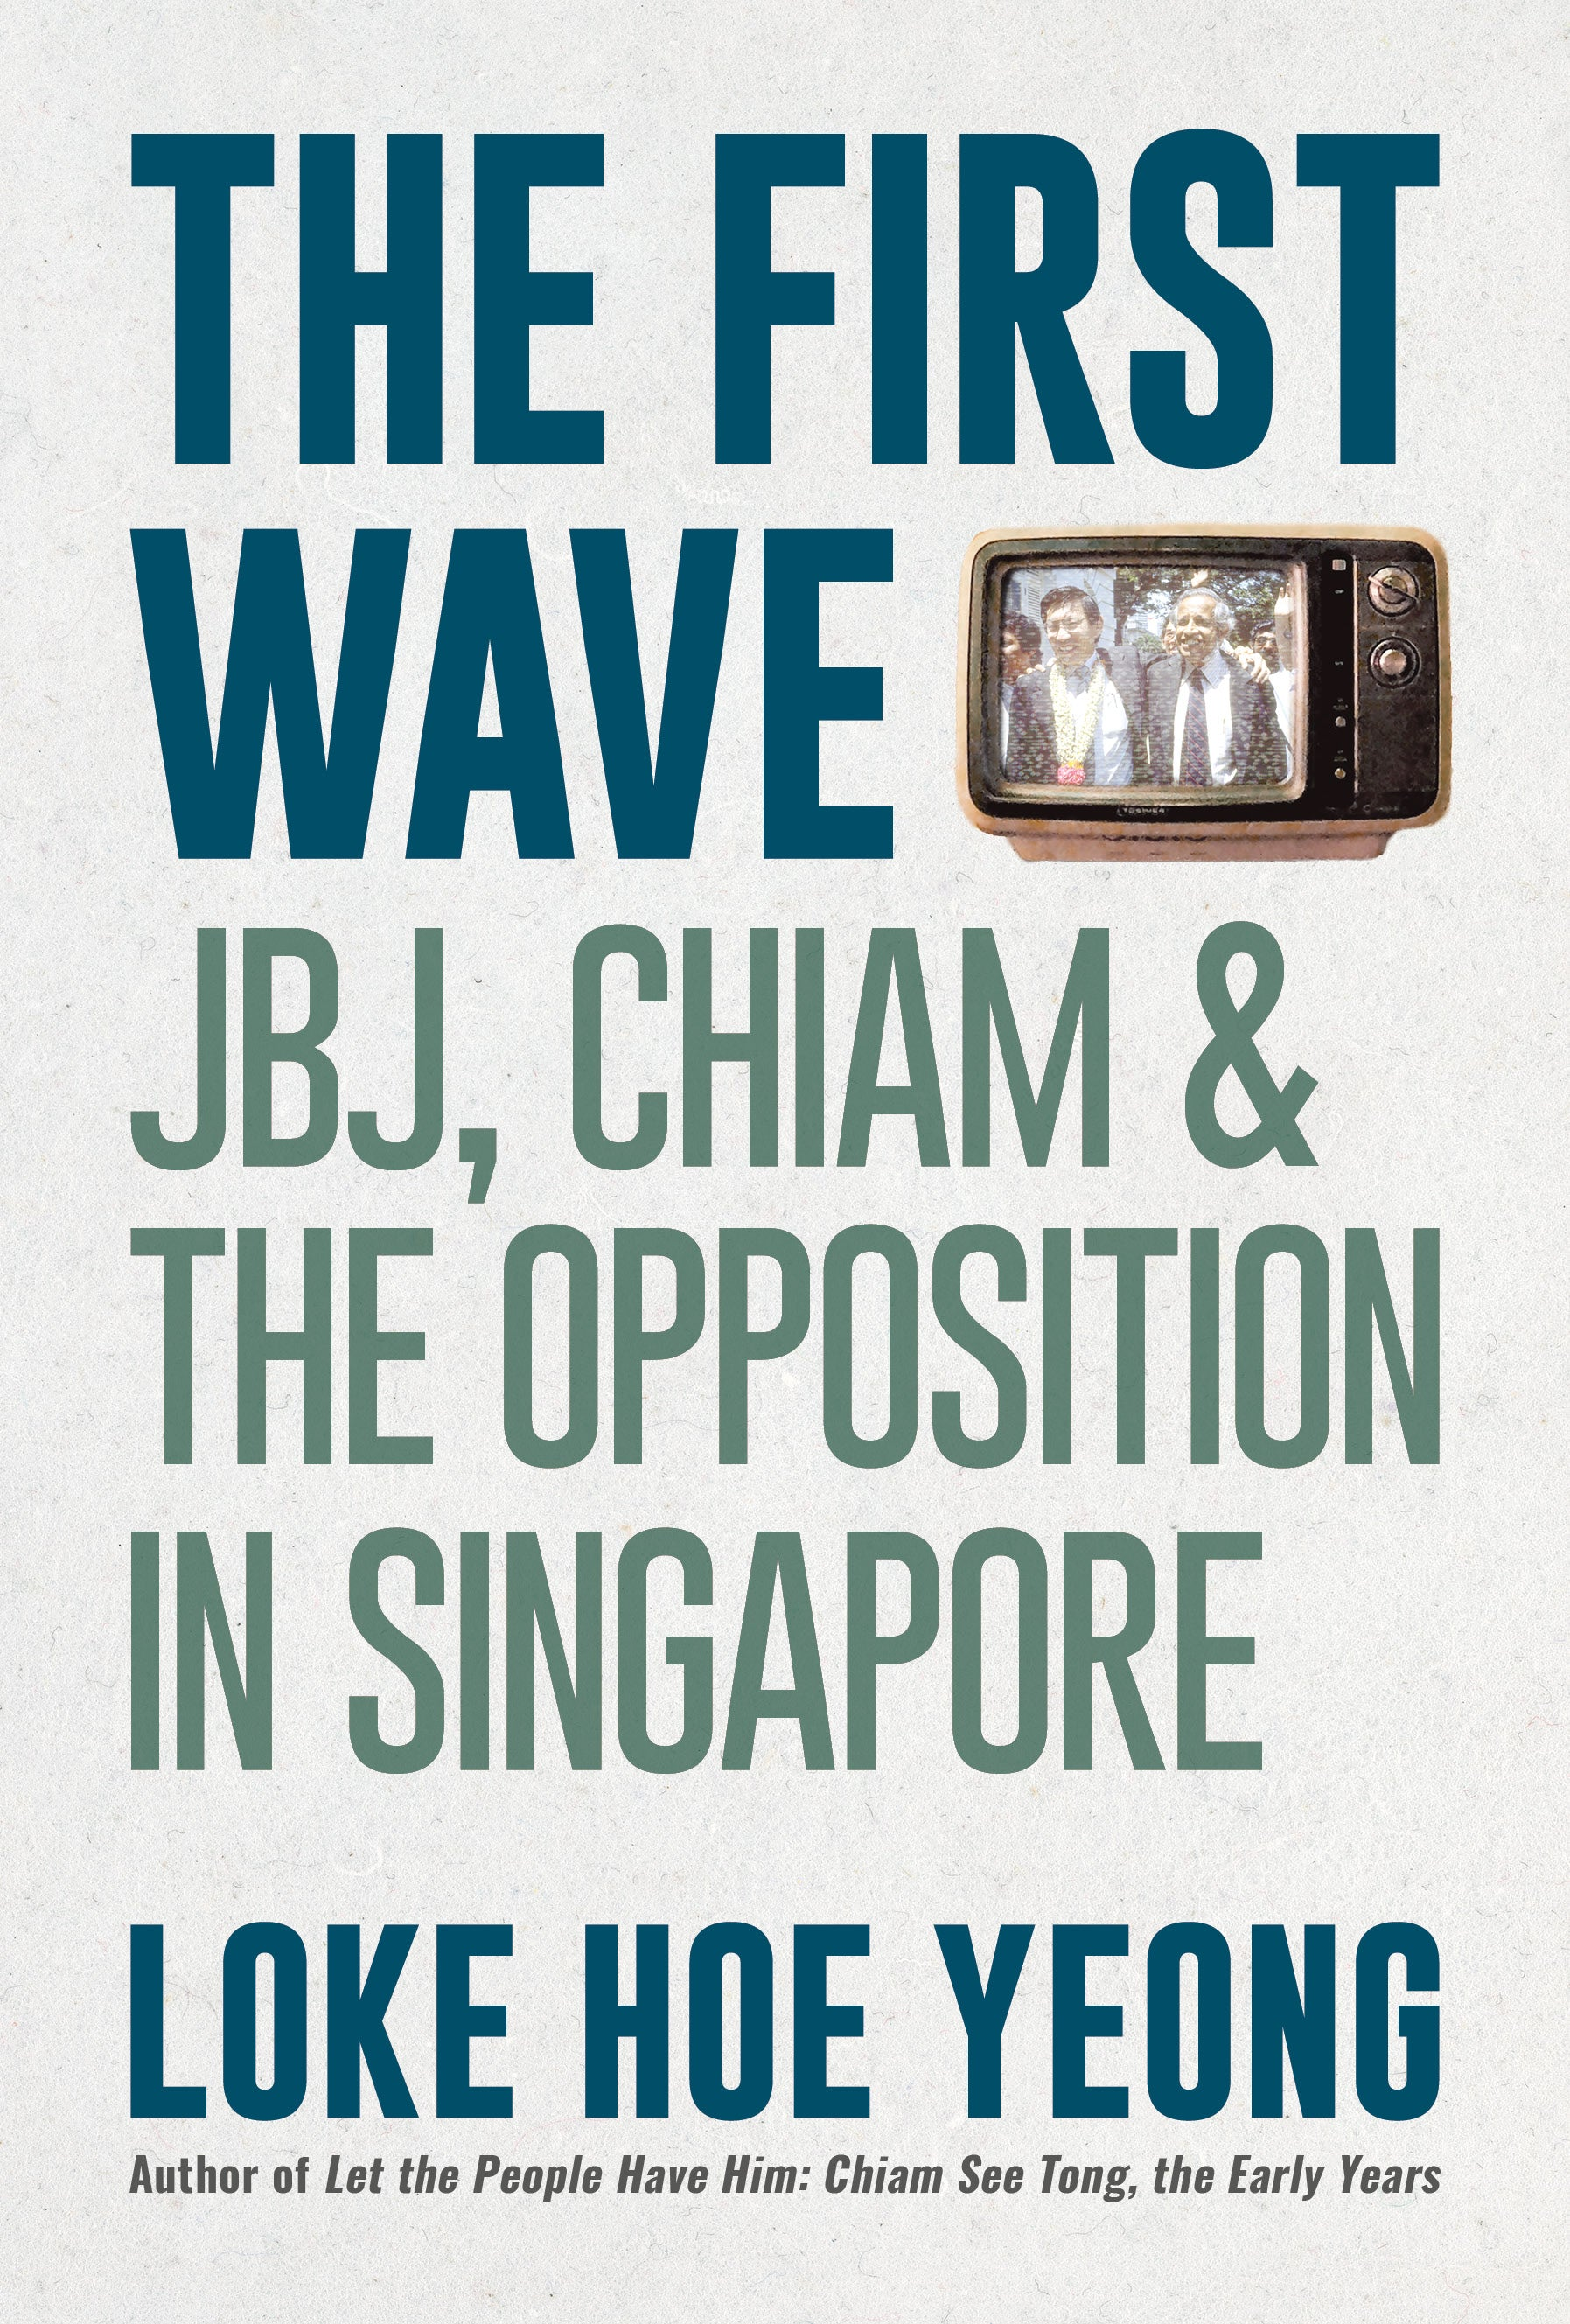 The First Wave: JBJ, Chiam & the Opposition in Singapore